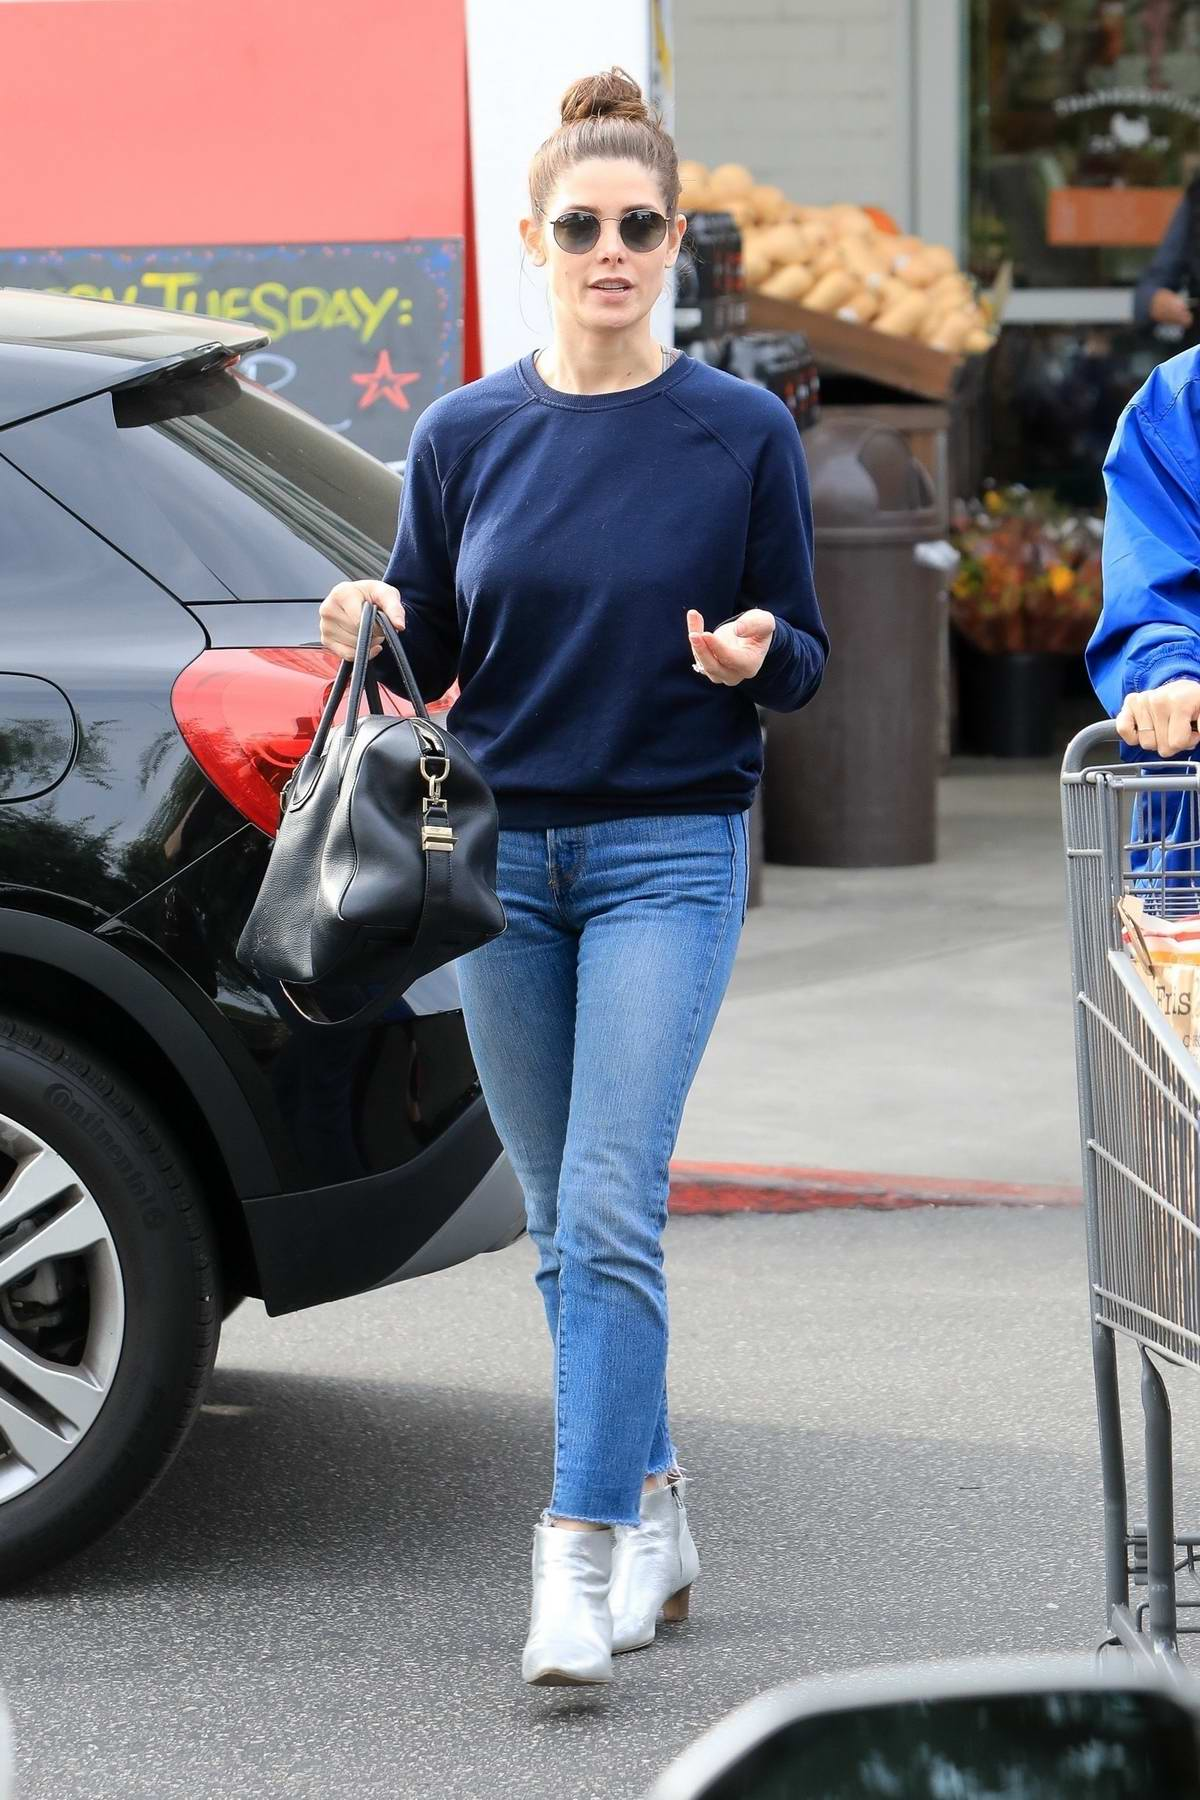 Ashley Greene wears a blue top and jeans as she goes shopping for groceries with a friend in Beverly Hills, Los Angeles